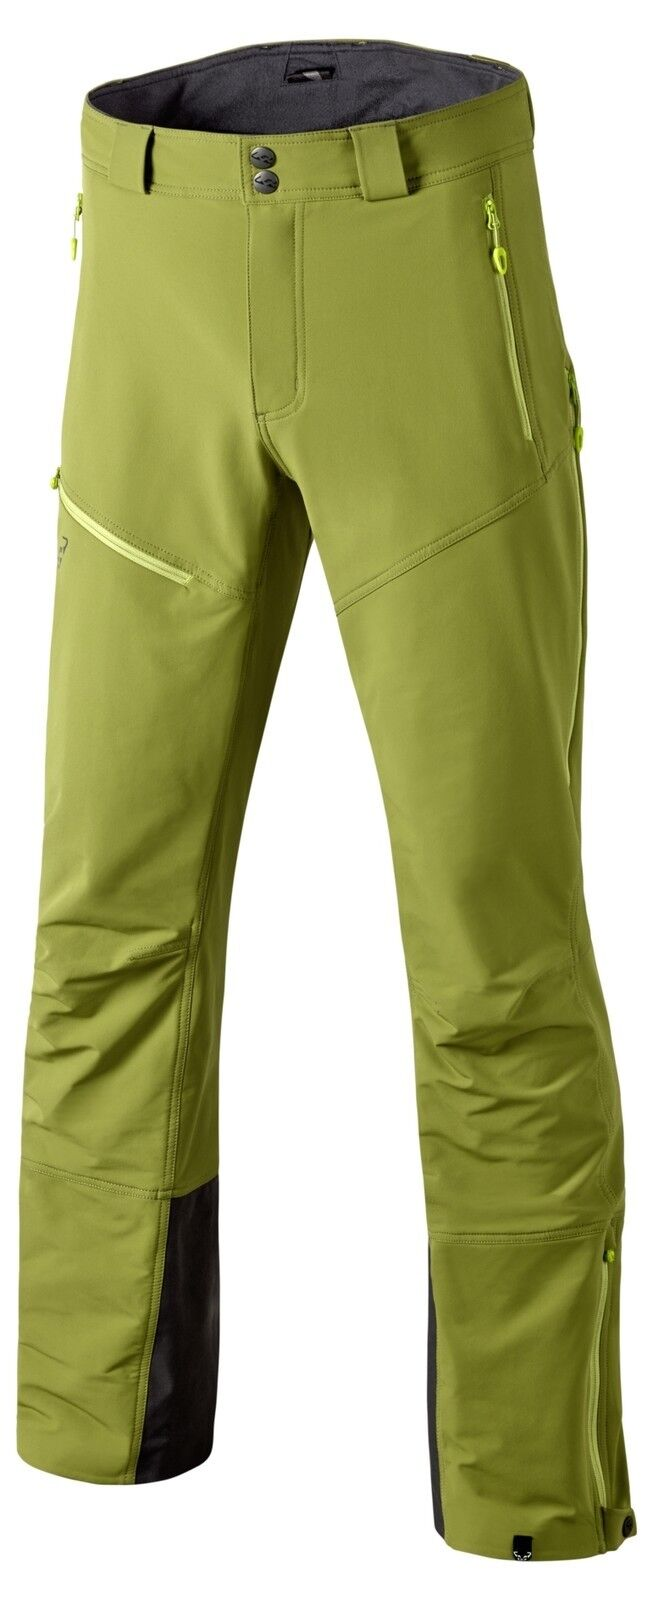 NEW Dynafit Aeon Durastretch Softshell Mojo Yellow Mens Large Ski  Pants Msrp 250  save up to 30-50% off